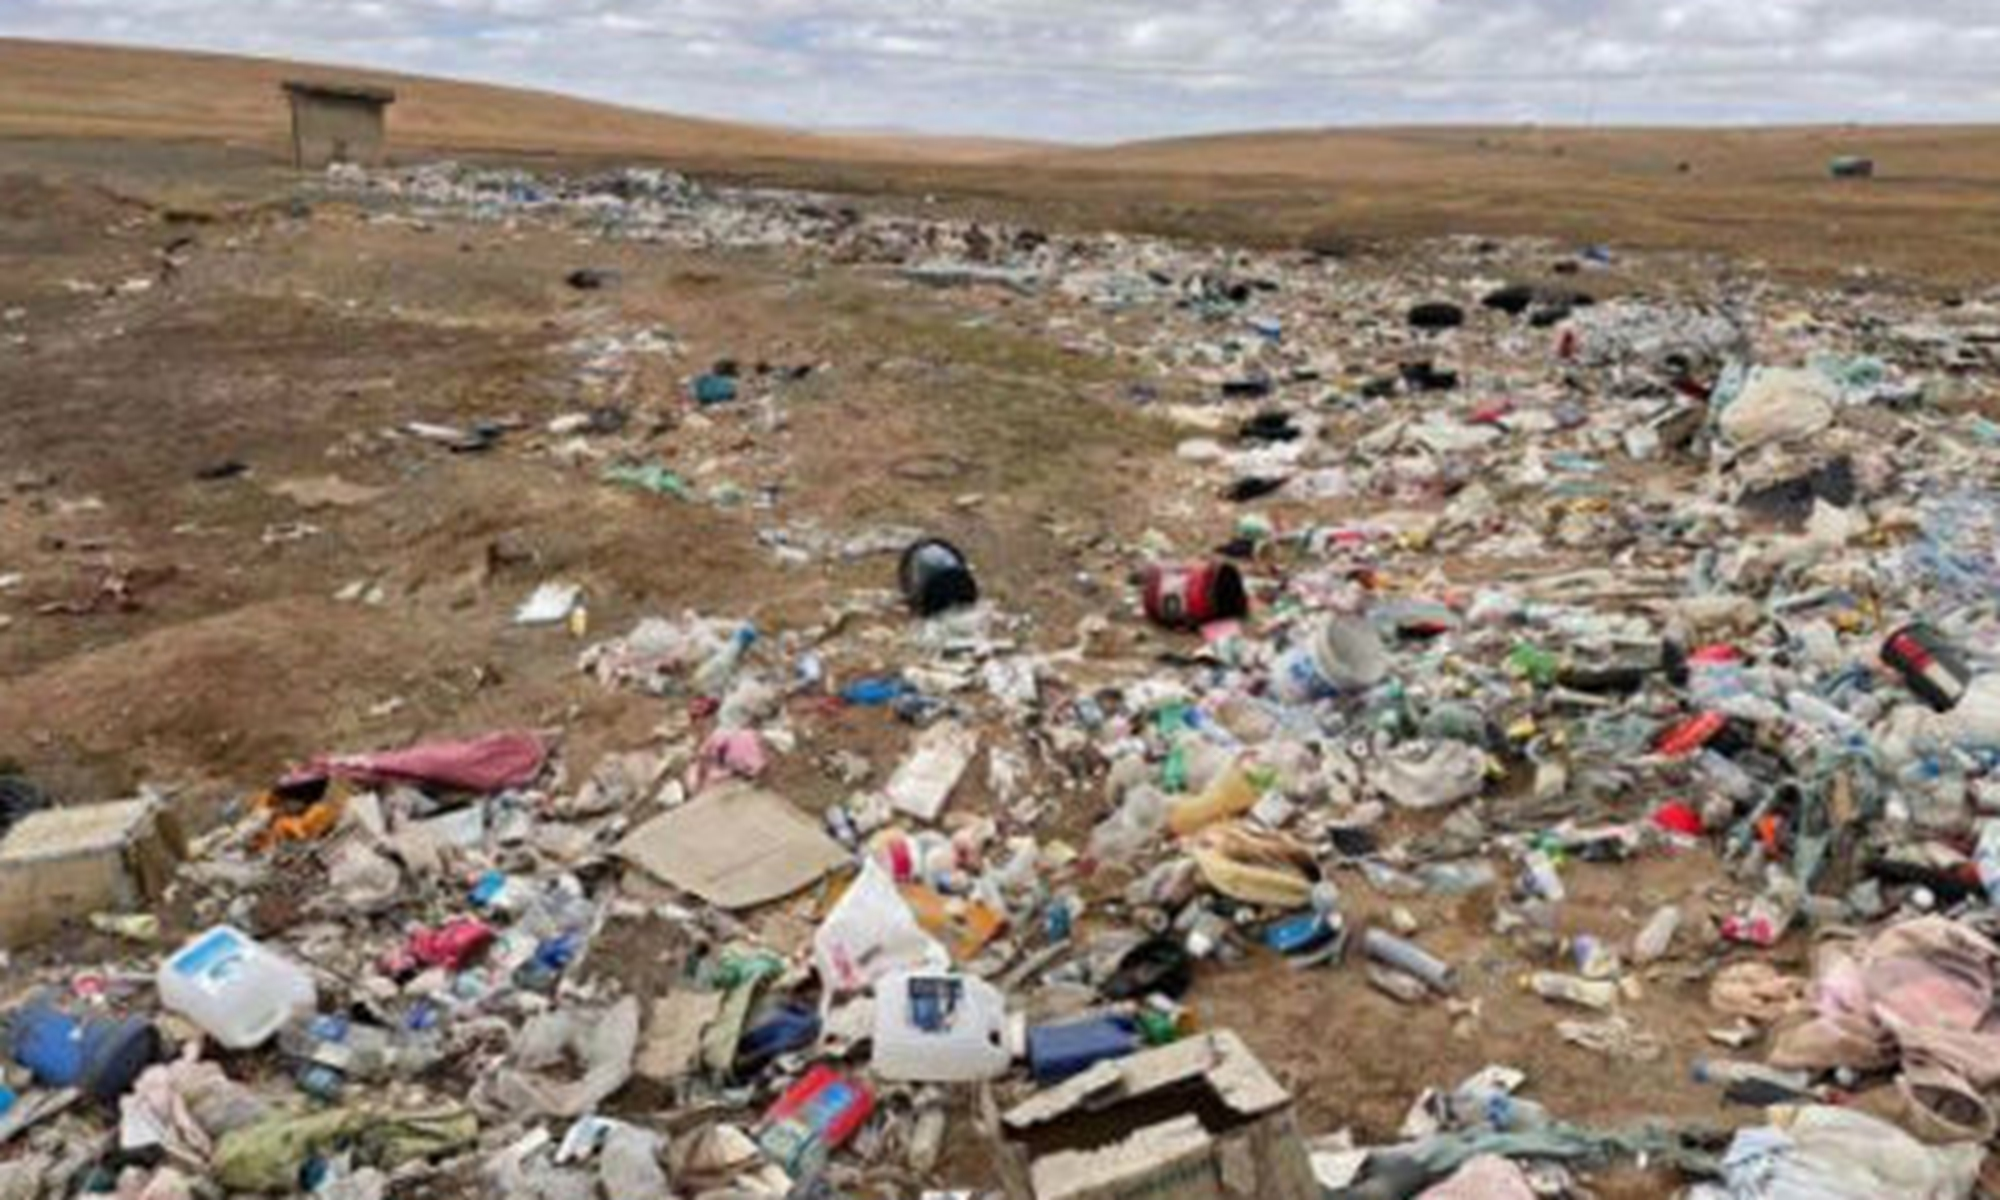 A large garbage patch about 200 meters long and 20 meters wide is reportedly found in Hoh Xil in Qinghai Province. Photo: The Economic Observer